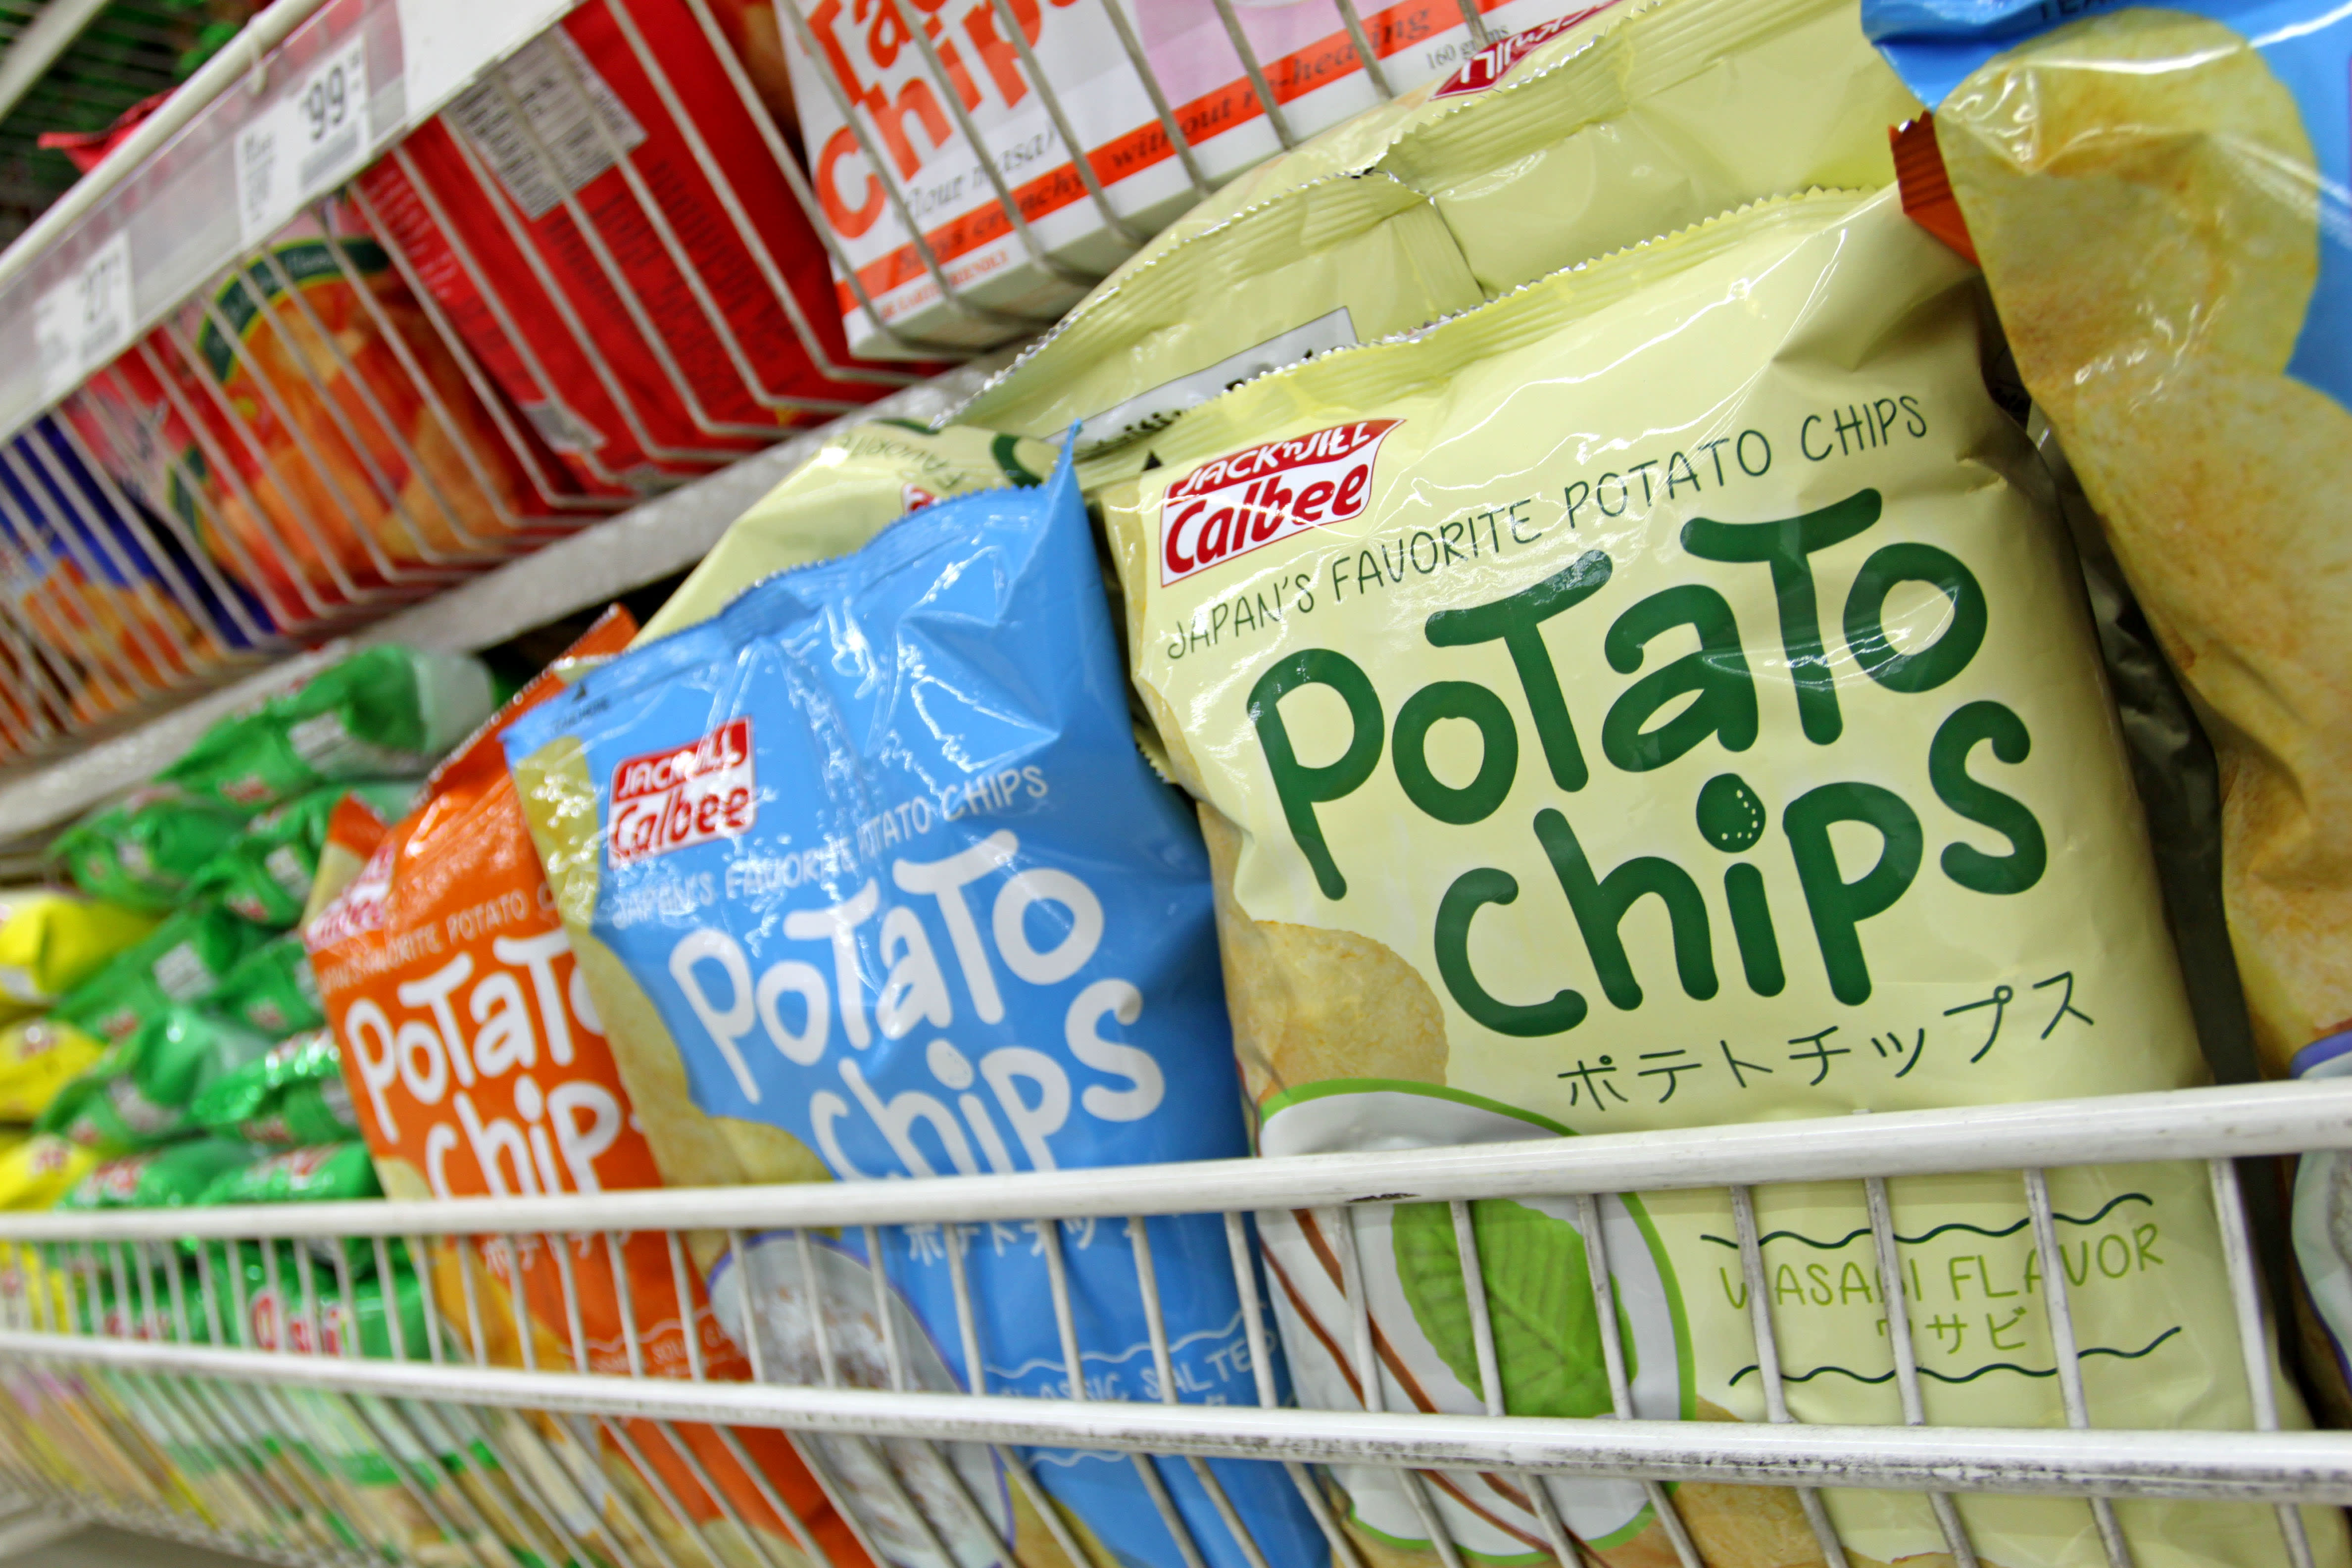 Japan's Calbee pulls out of Philippine potato chip venture - Nikkei